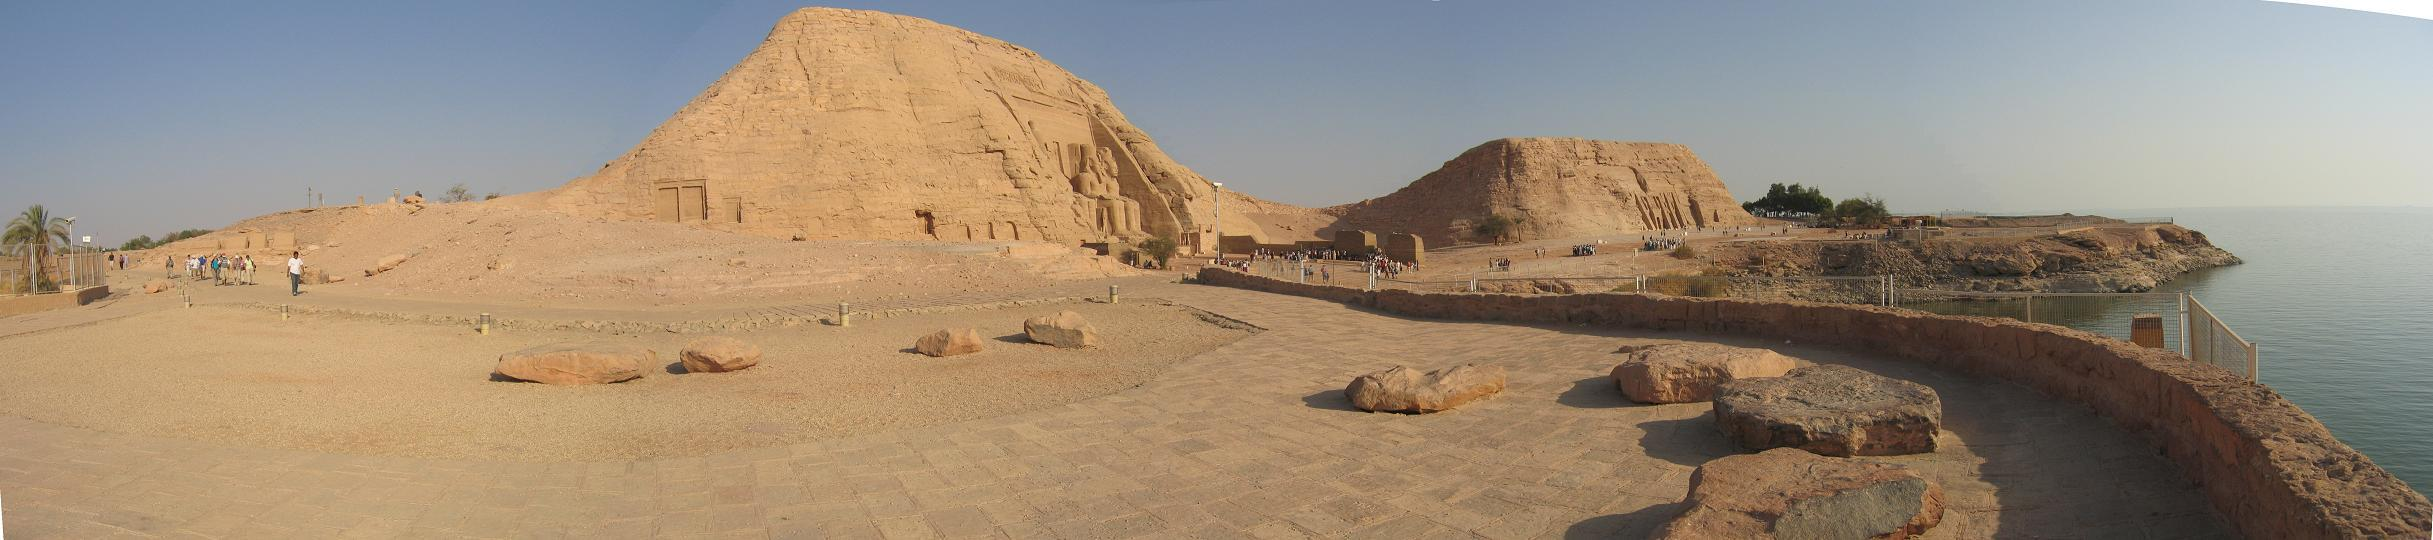 Egypt_abusimbel3